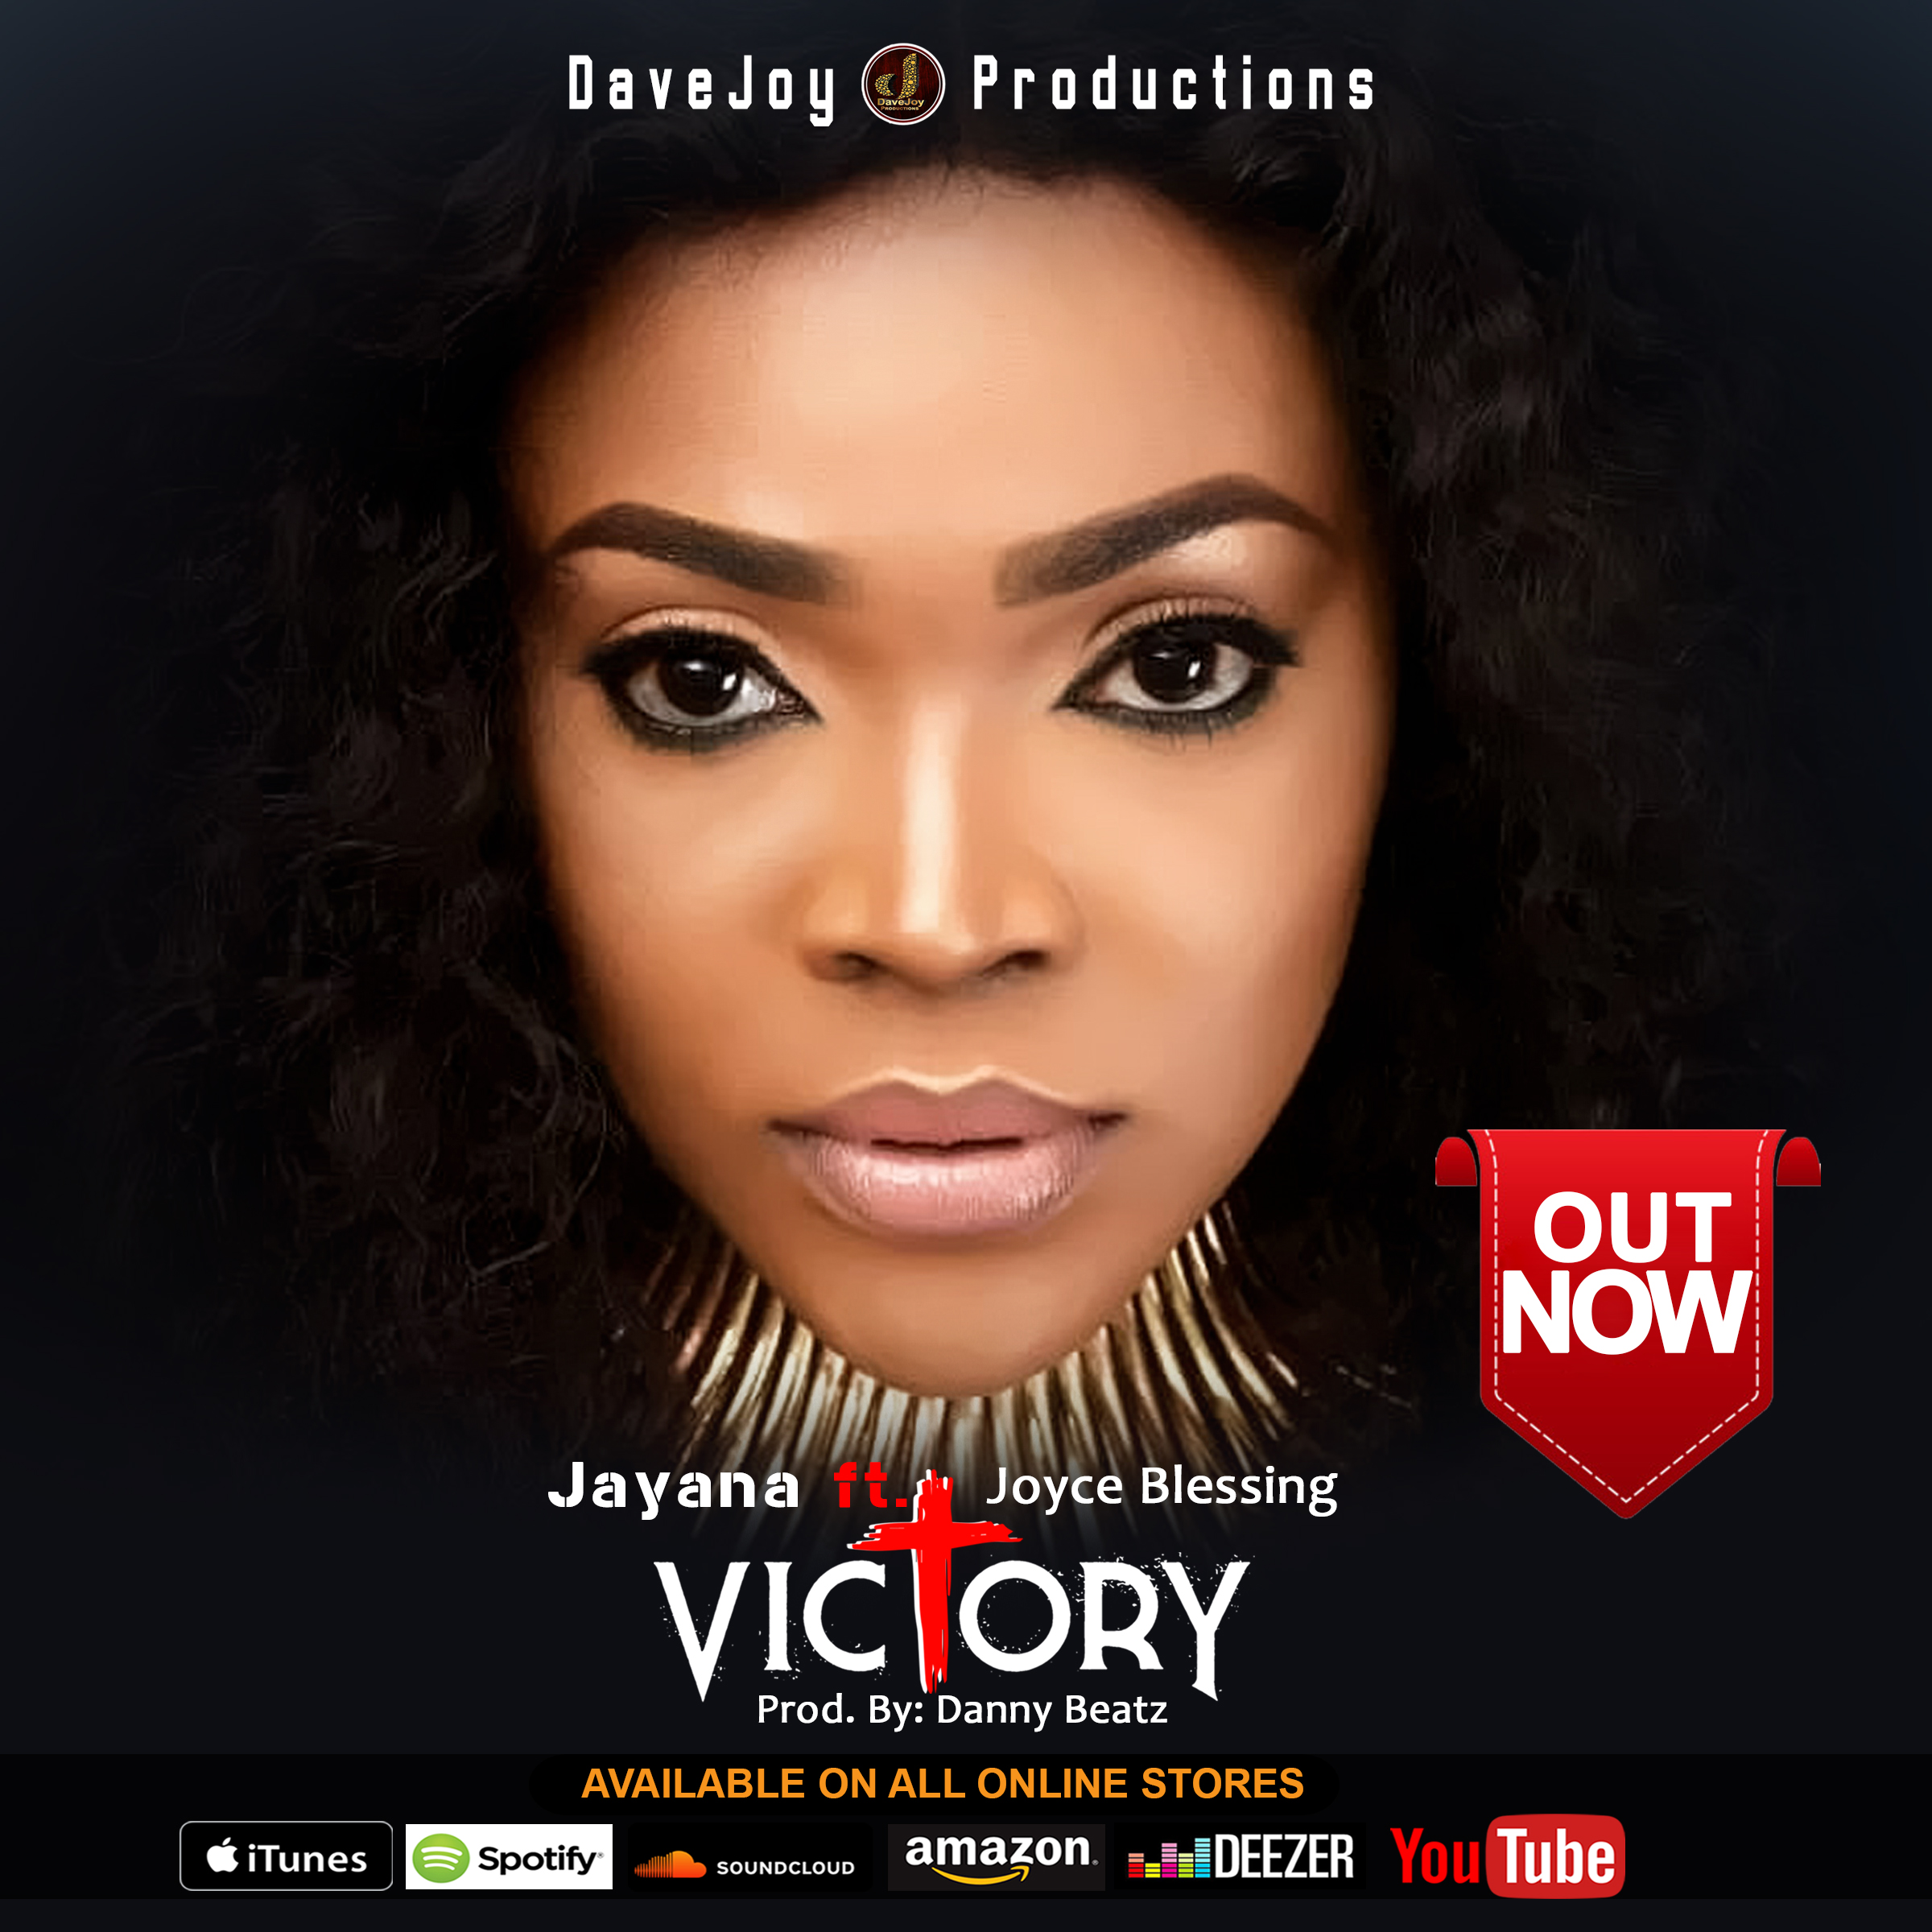 New Music: Jayana Releases Victory Featuring Joyce Blessing